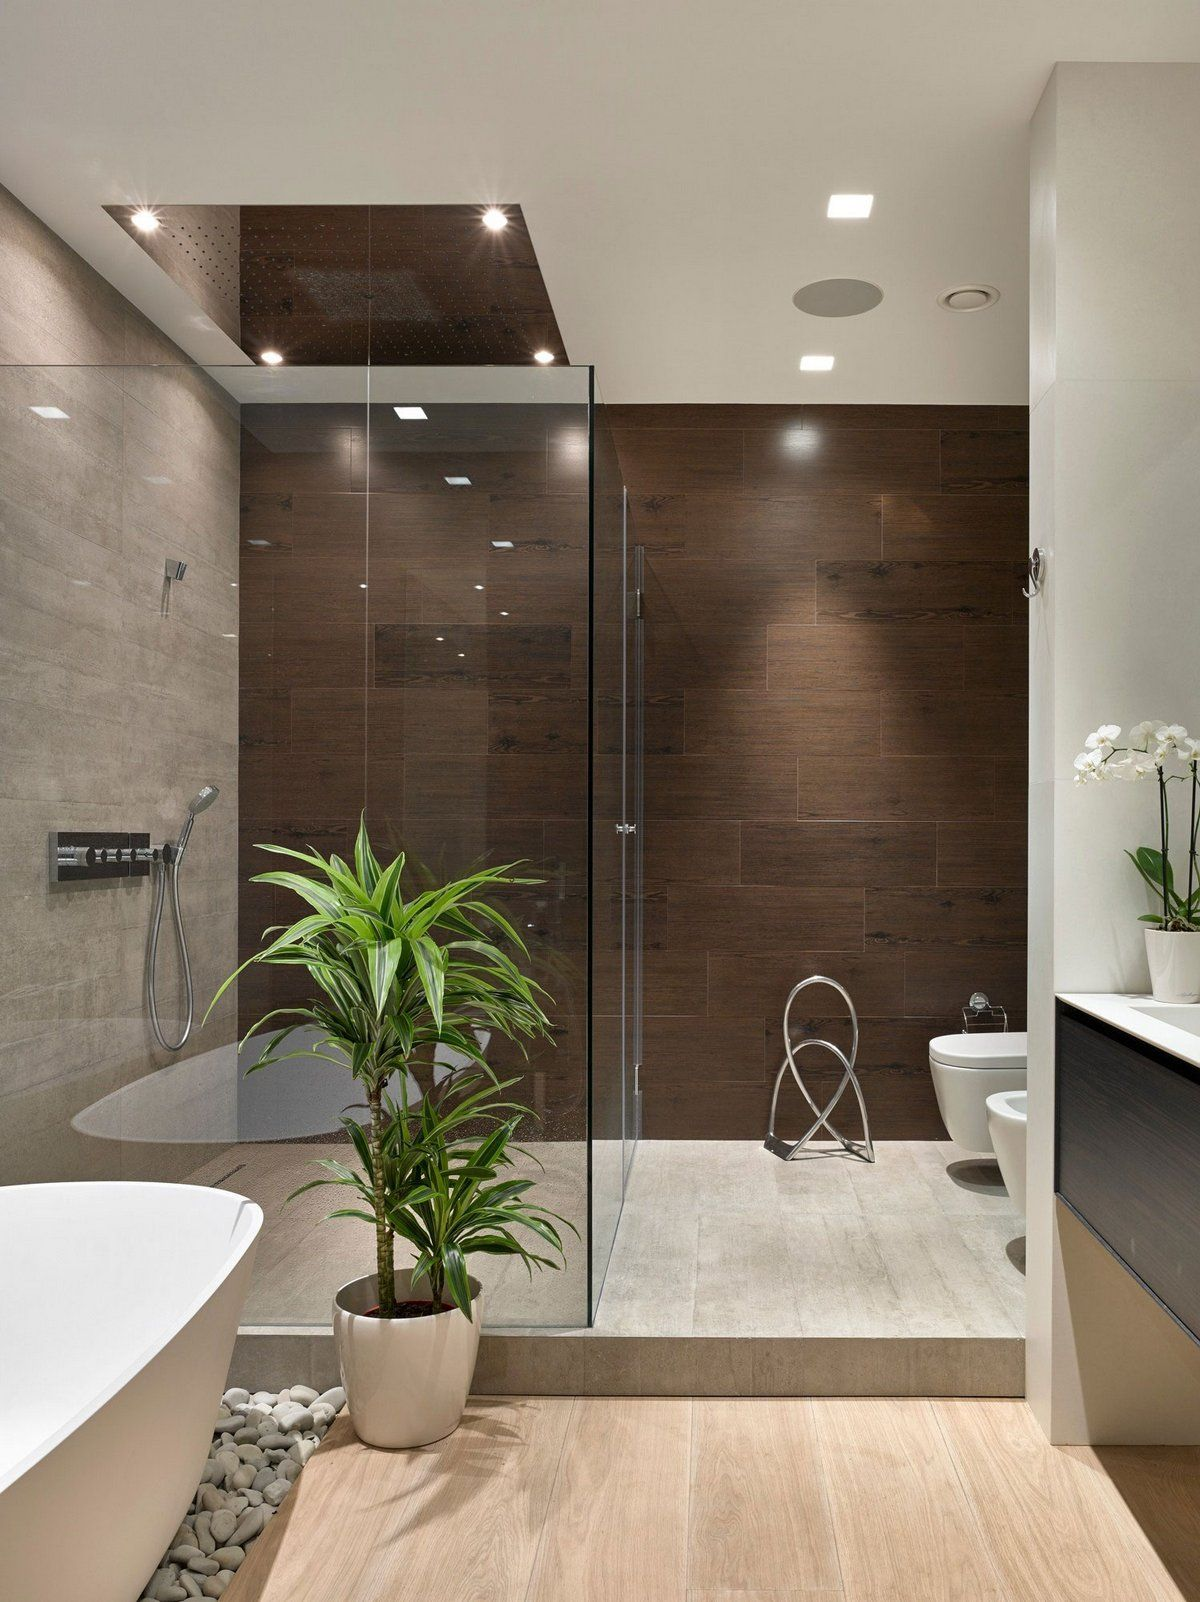 Attirant Modern Bathroom Design By Architect Alexander Fedorov